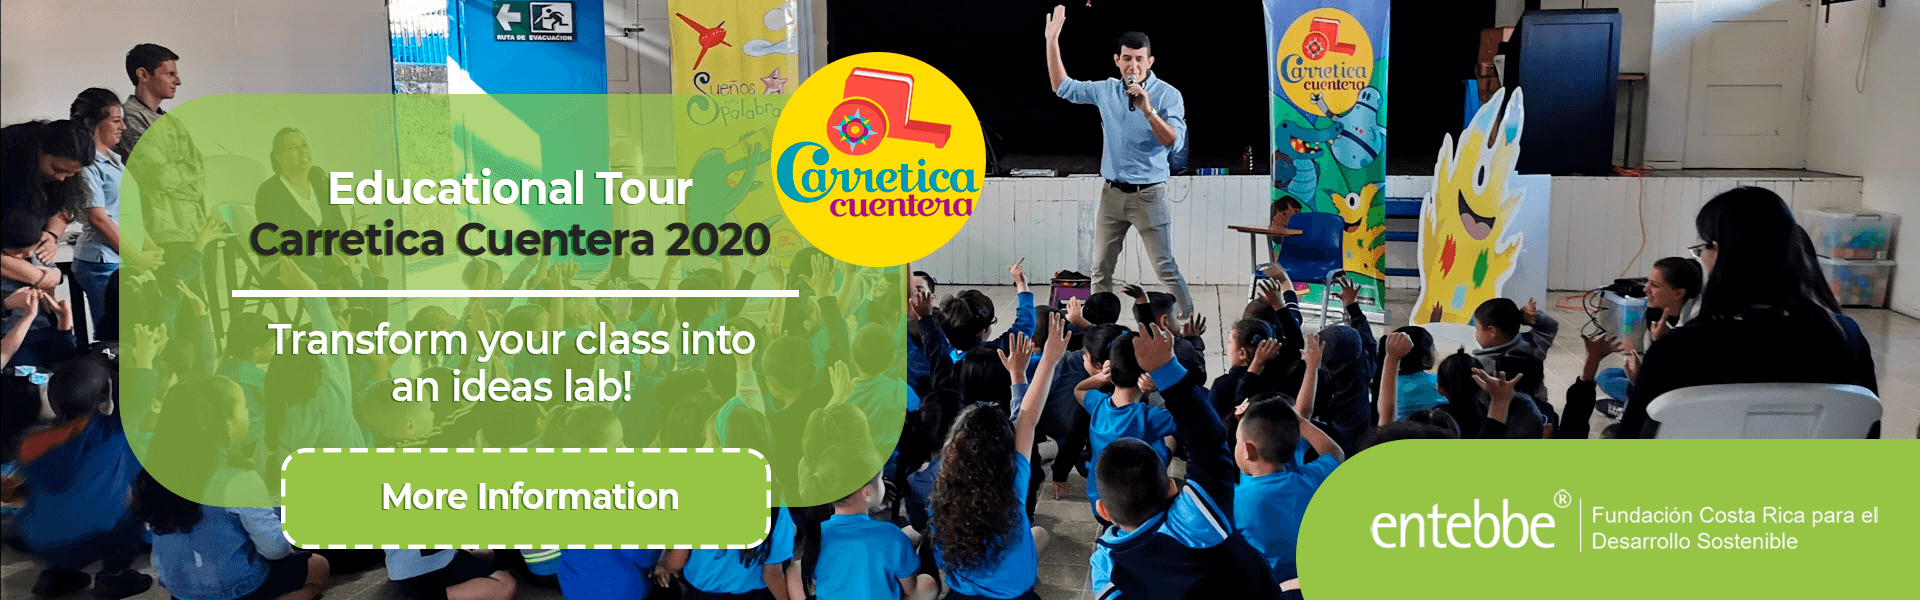 Educational Tour Carretica Cuentera 2020